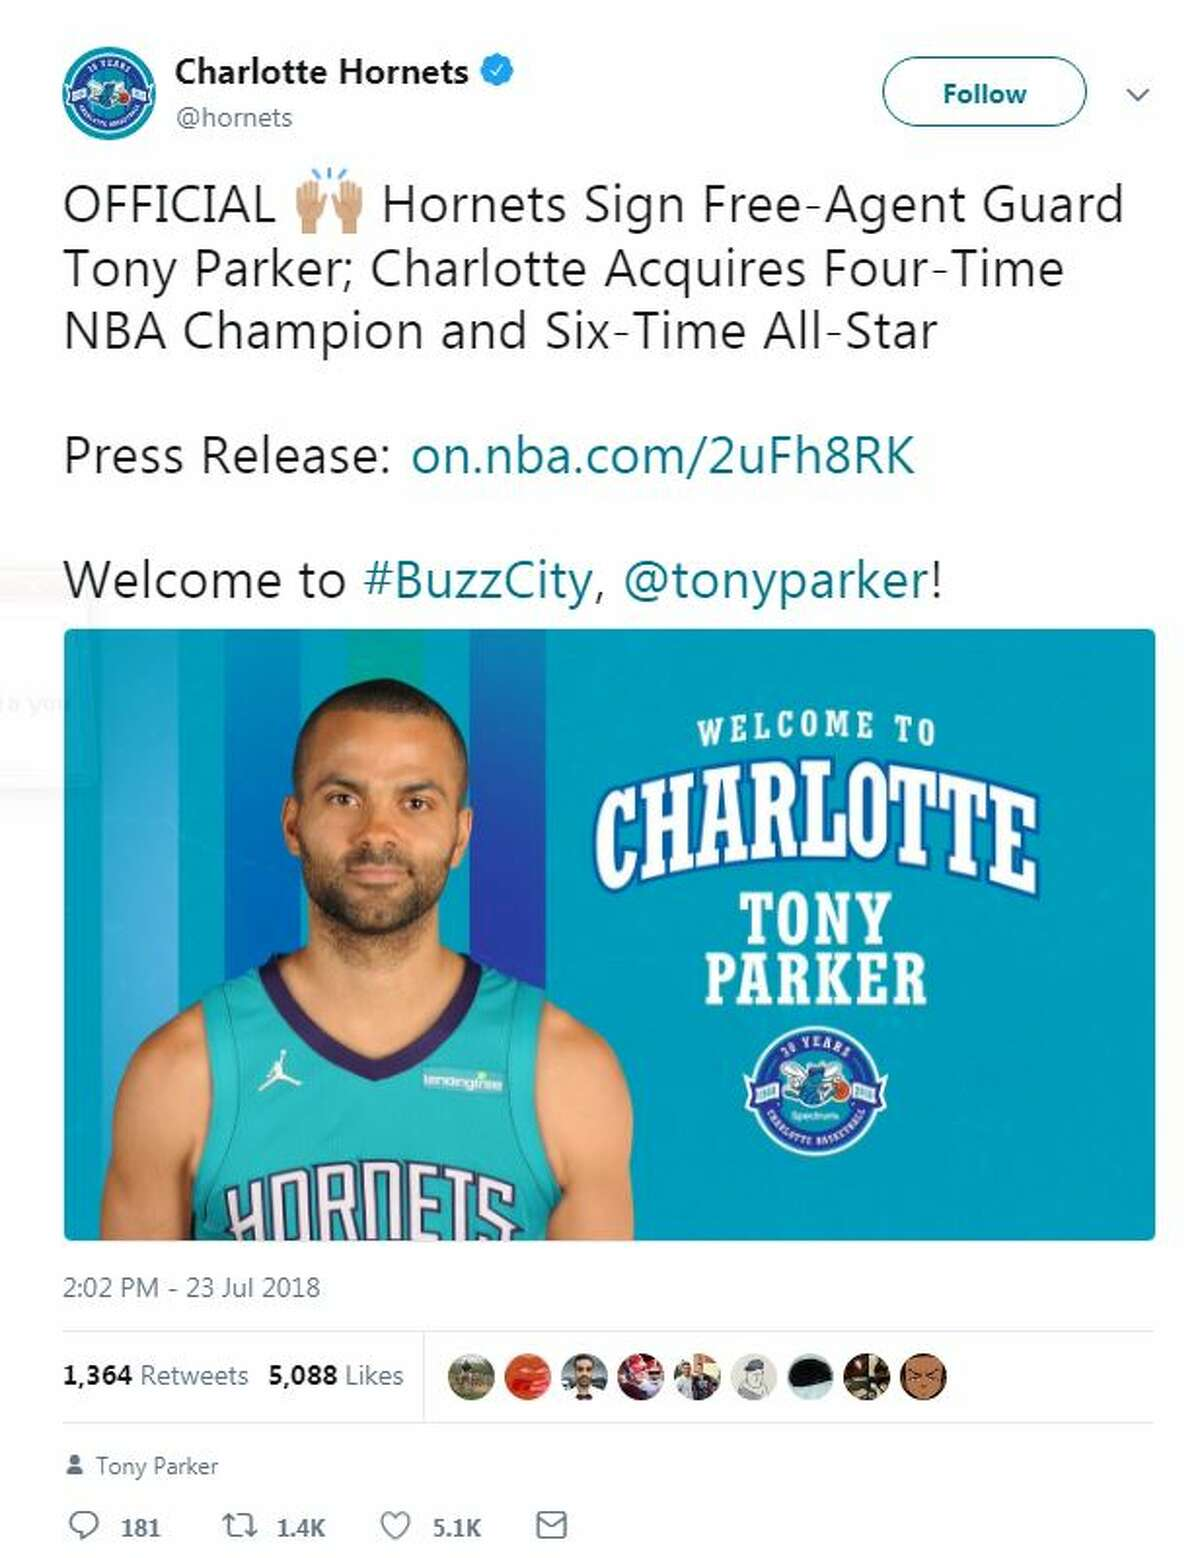 The Charlotte Hornets officially signed Tony Parker, who played for 17 seasons with the San Antonio Spurs.